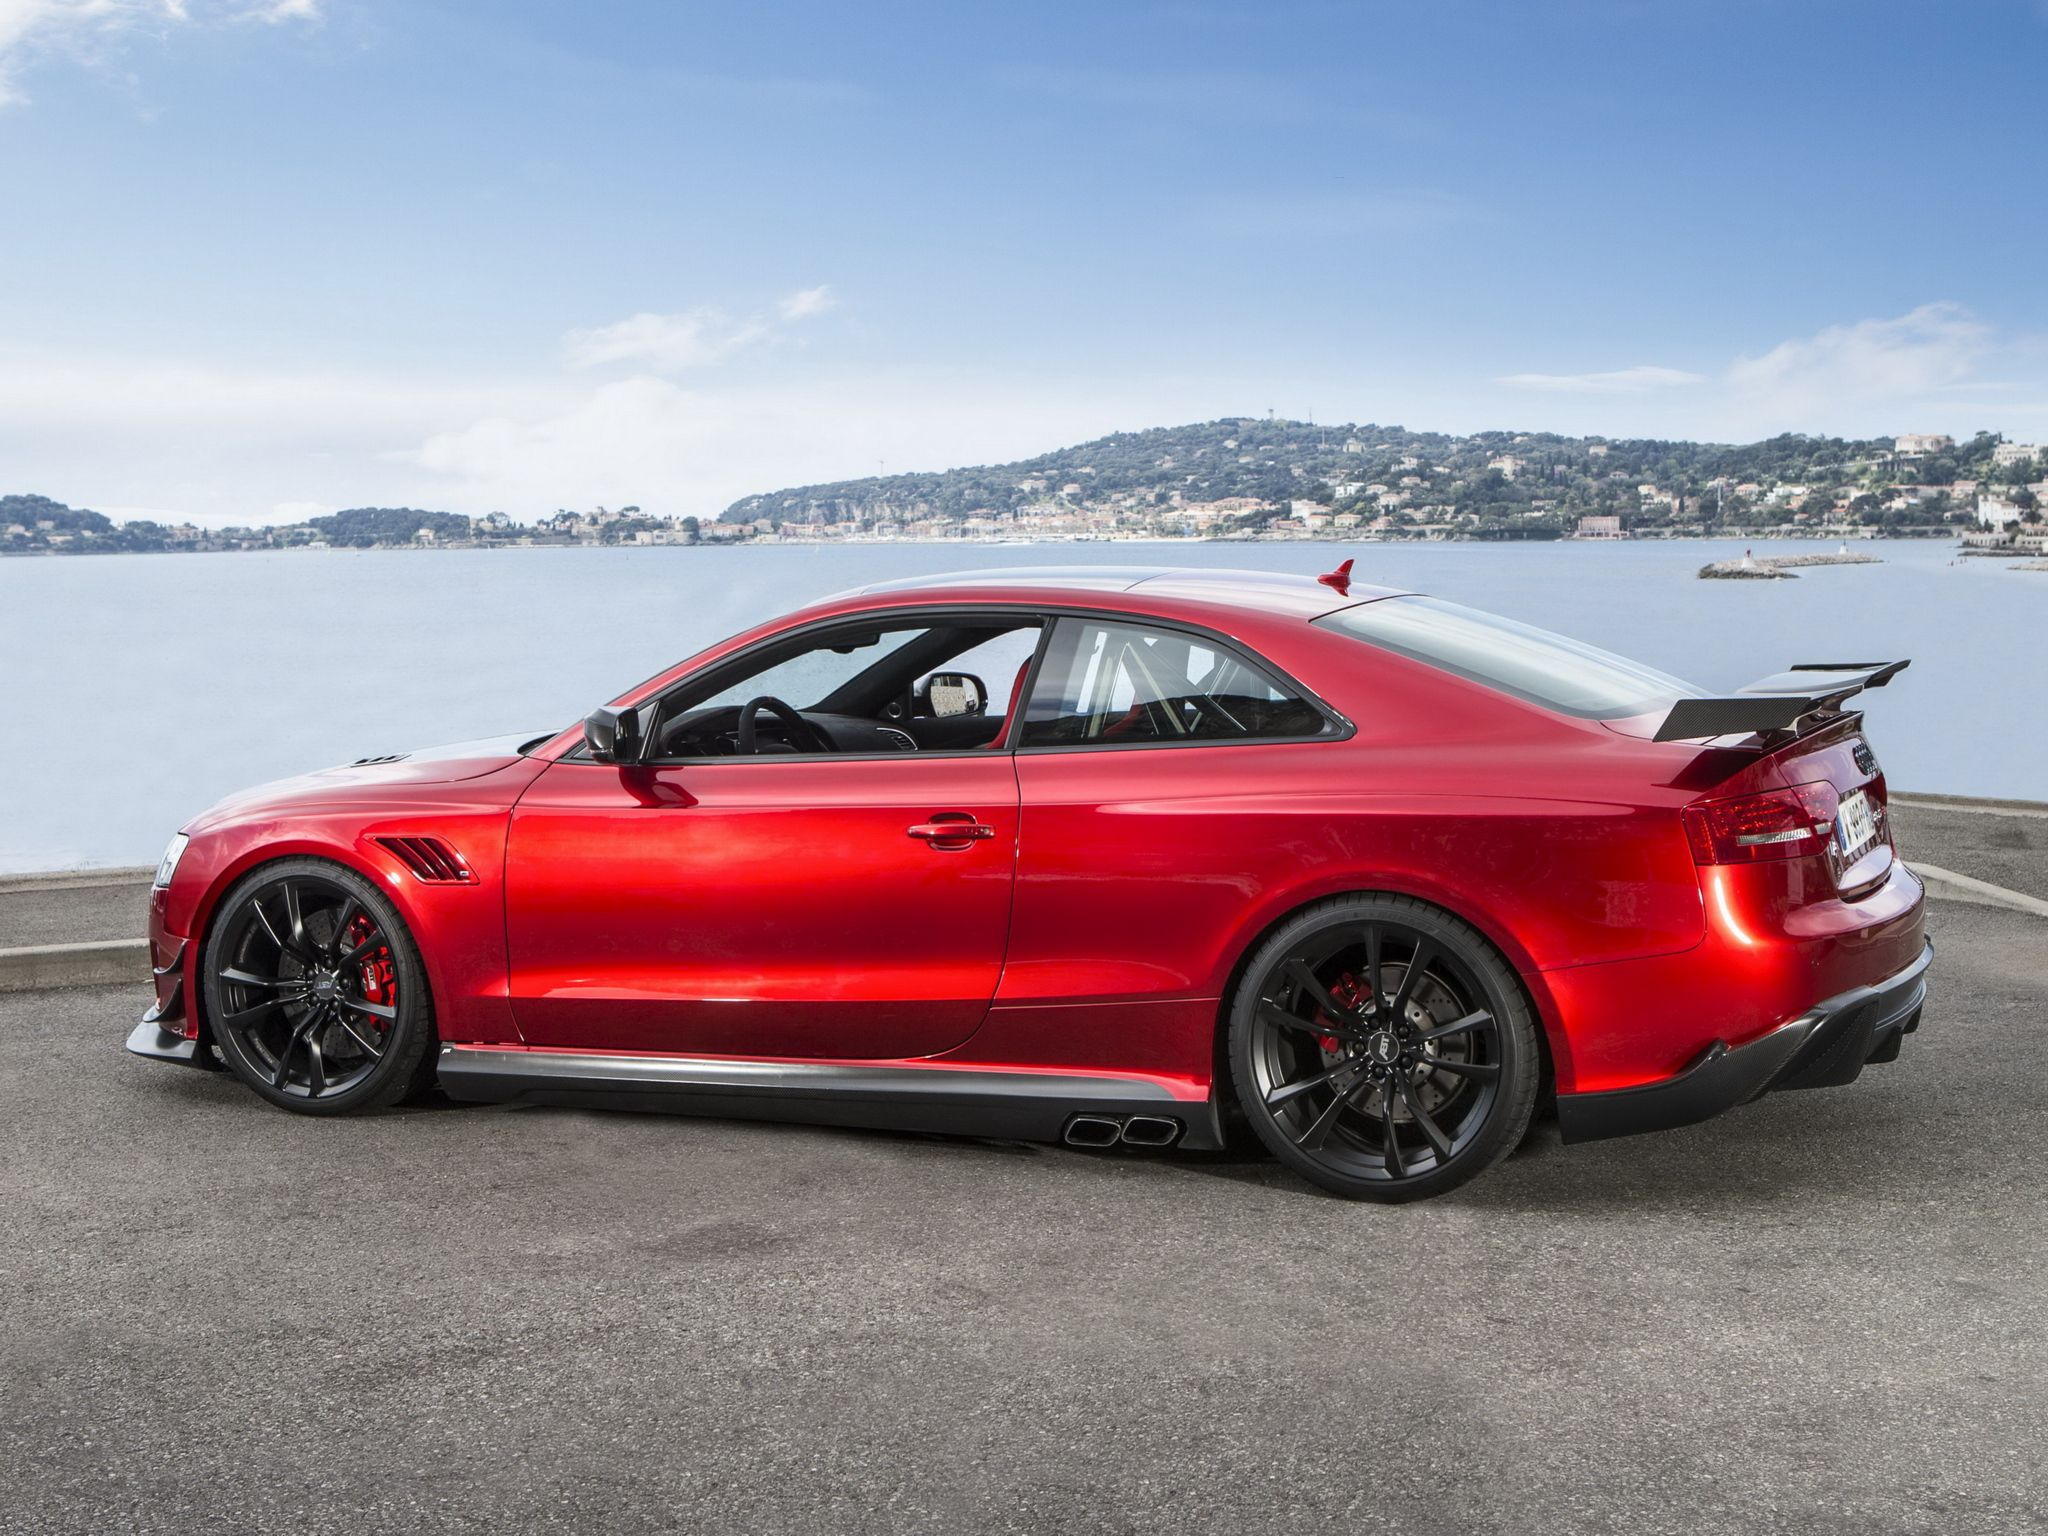 2013 Abt Audi Rs5 R 2048x1536 R Imagesofthe2010s Audi Rs5 Audi S5 Coupe Cars